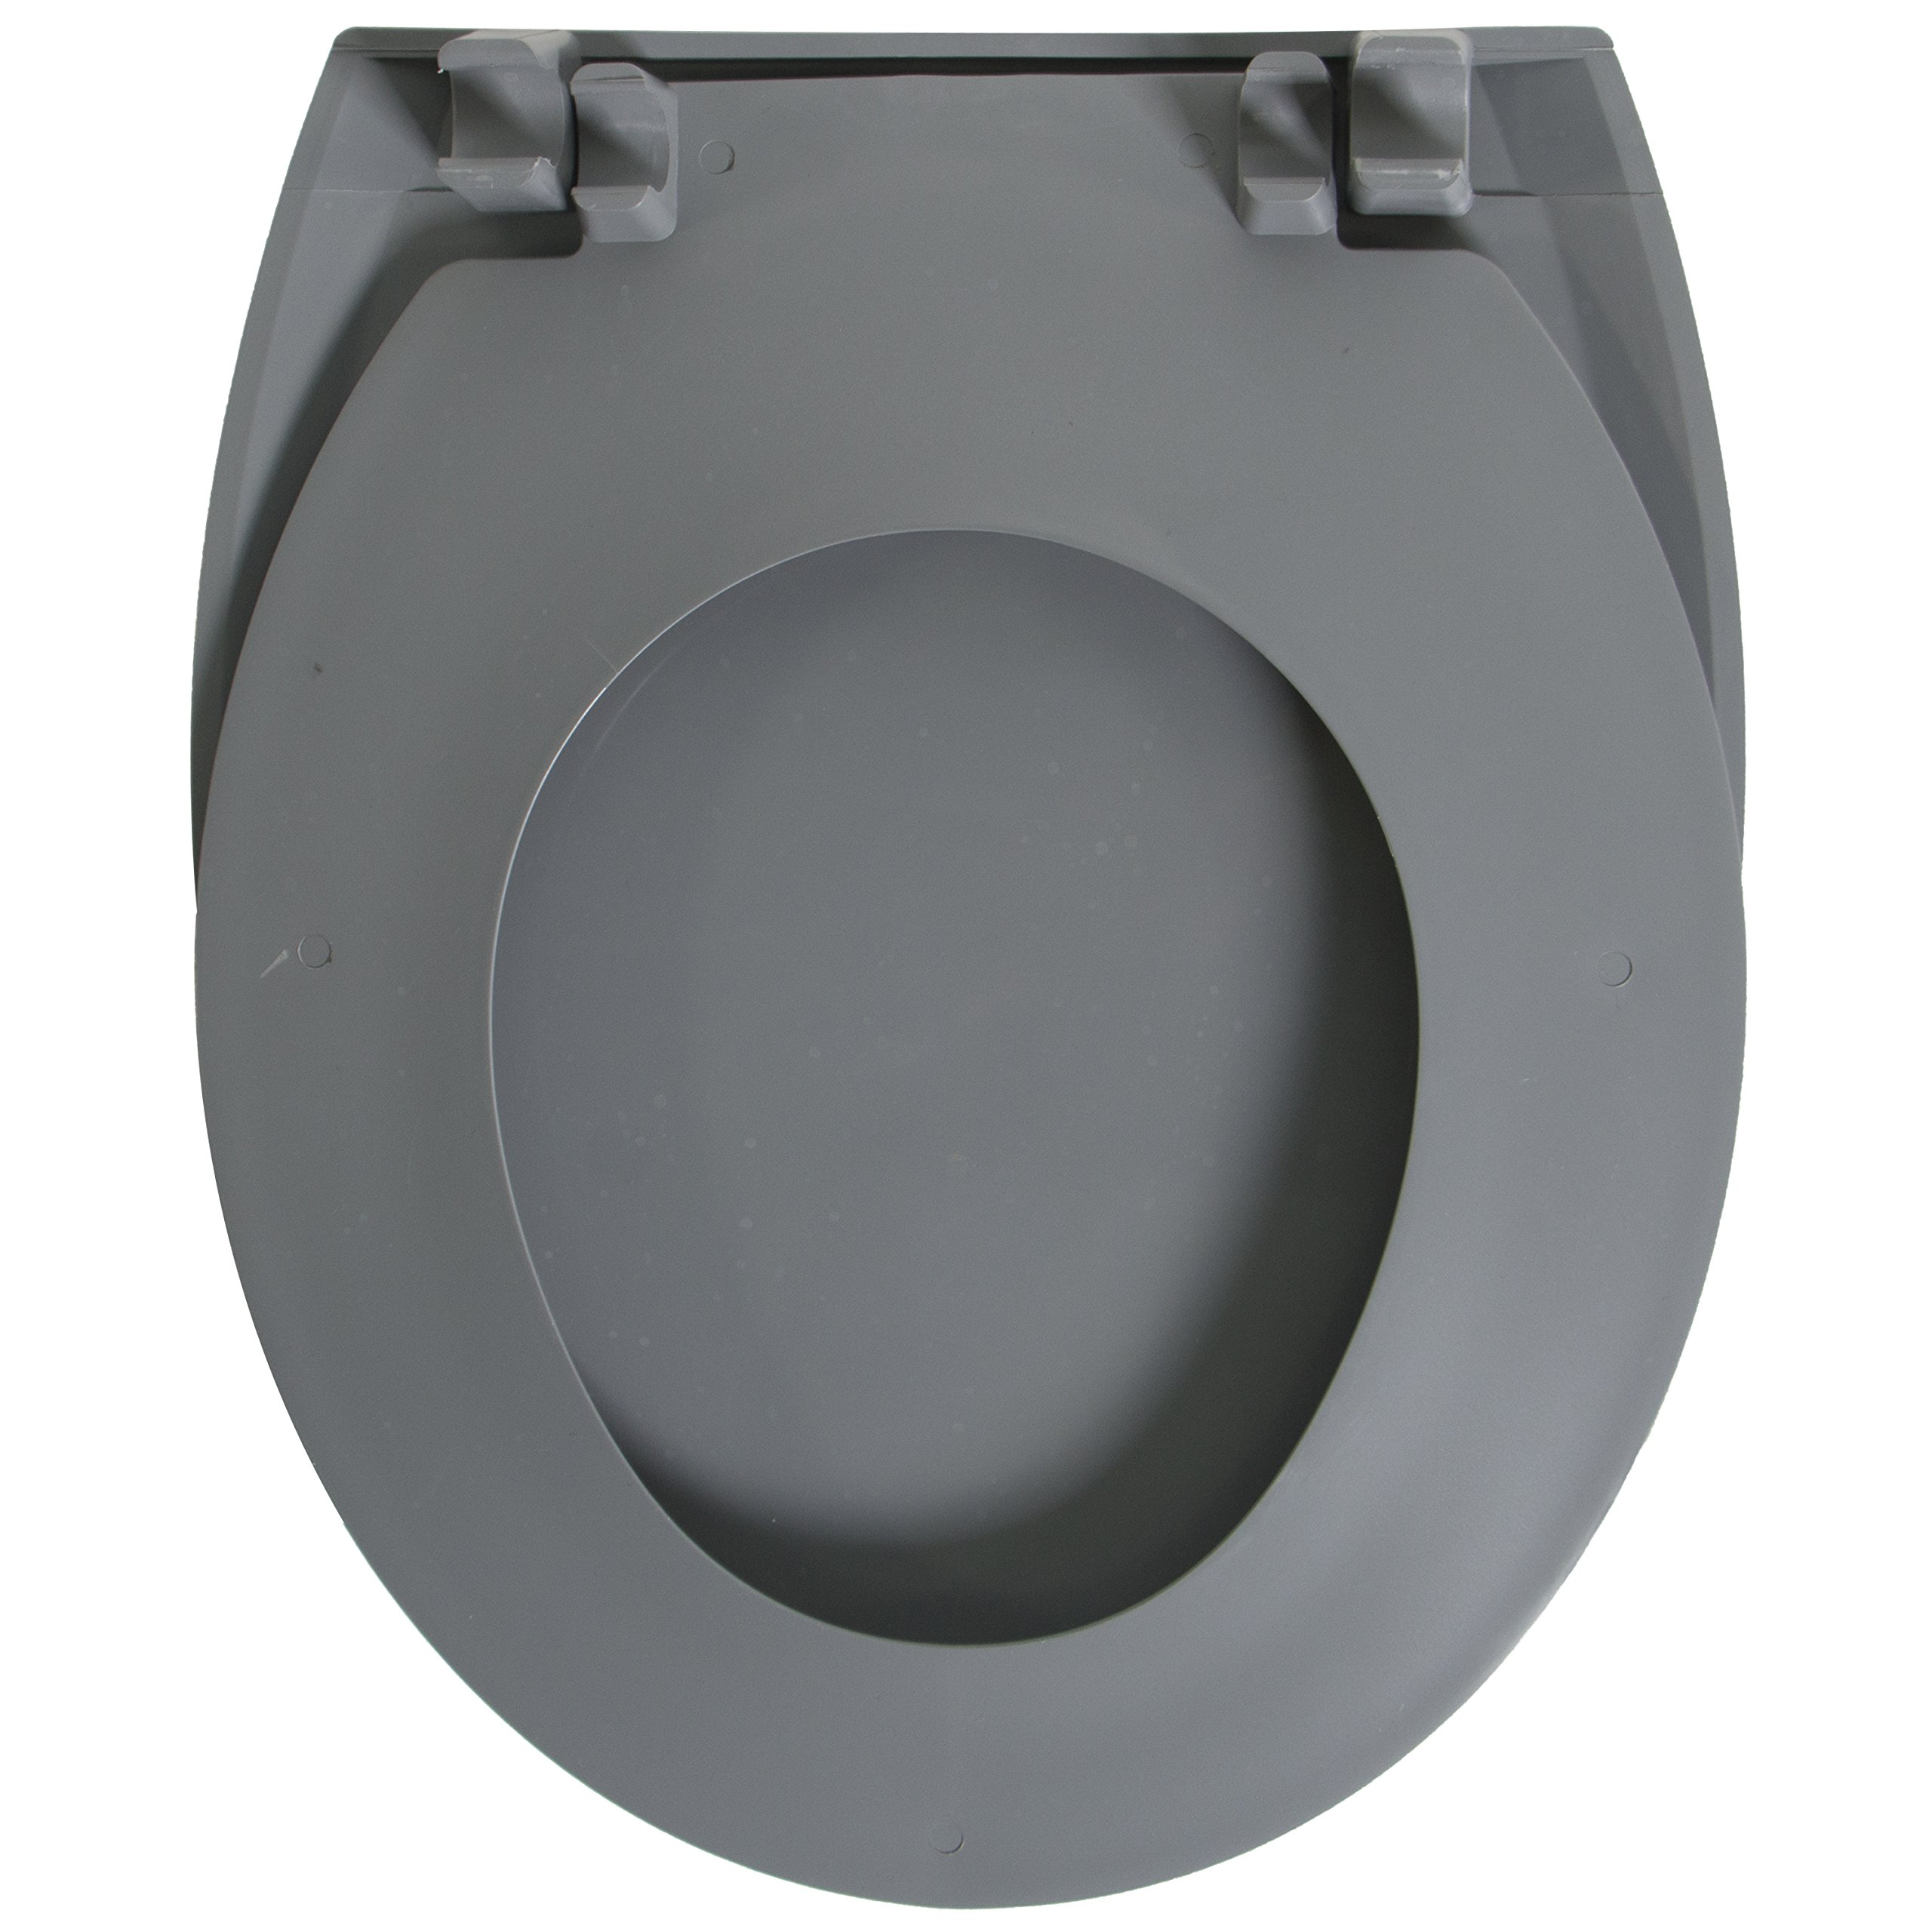 Pcp Replacement Seat Assembly for 5028 Commode, Grey